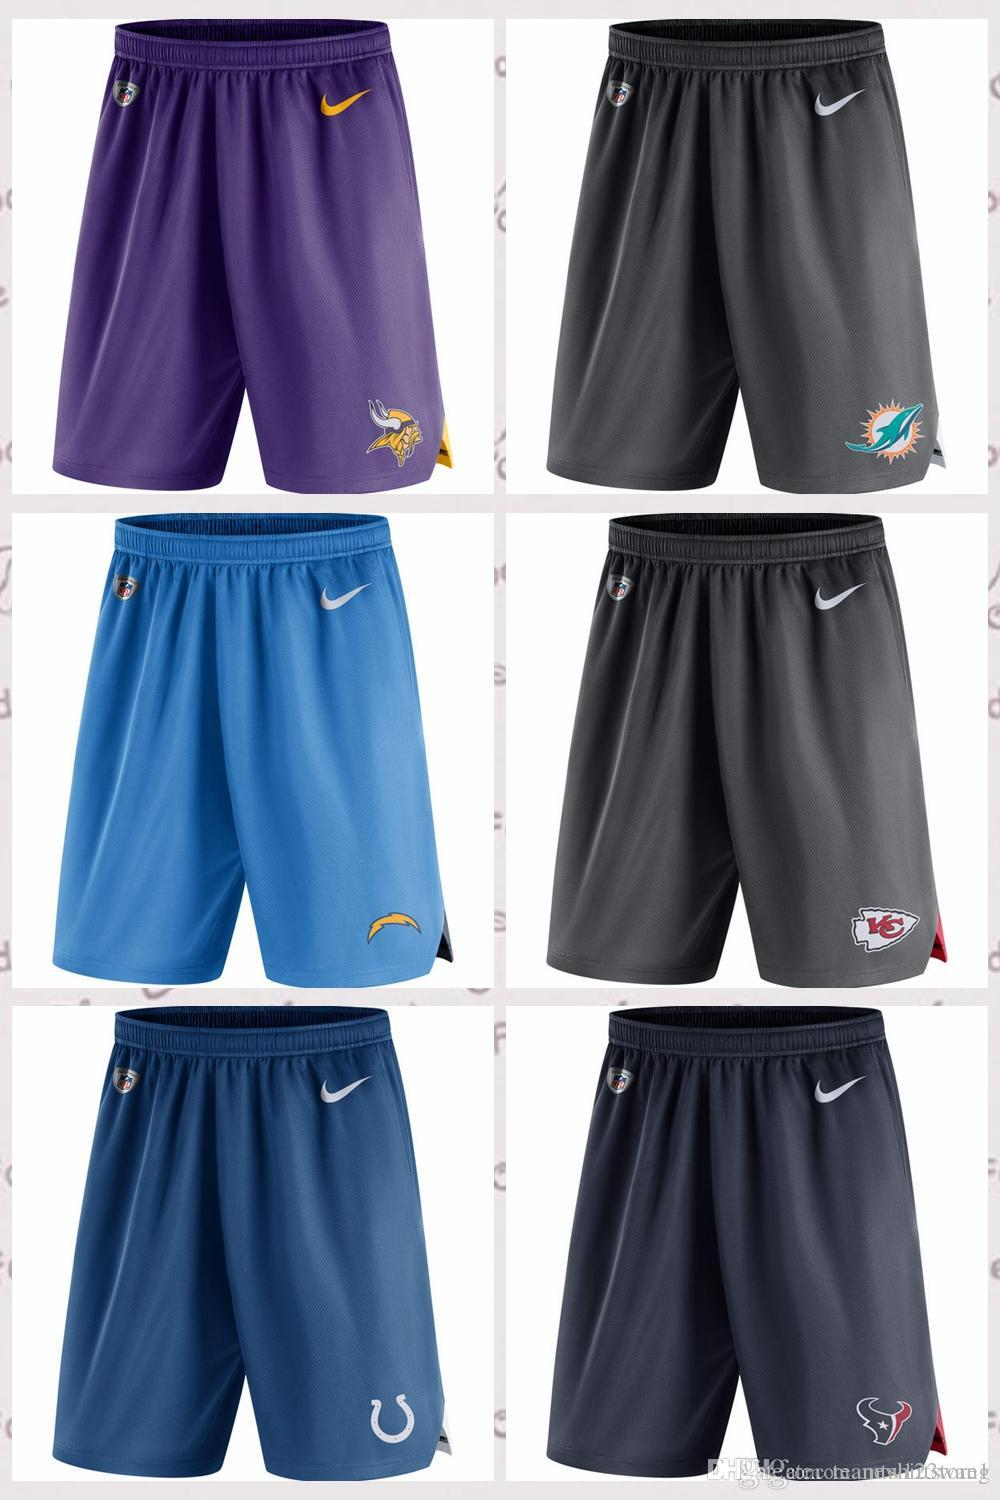 890bfedc Minnesota Vikings Miami Dolphins Los Angeles Chargers Kansas City Chiefs  Indianapolis Colts Houston Texans Knit Performance Shorts